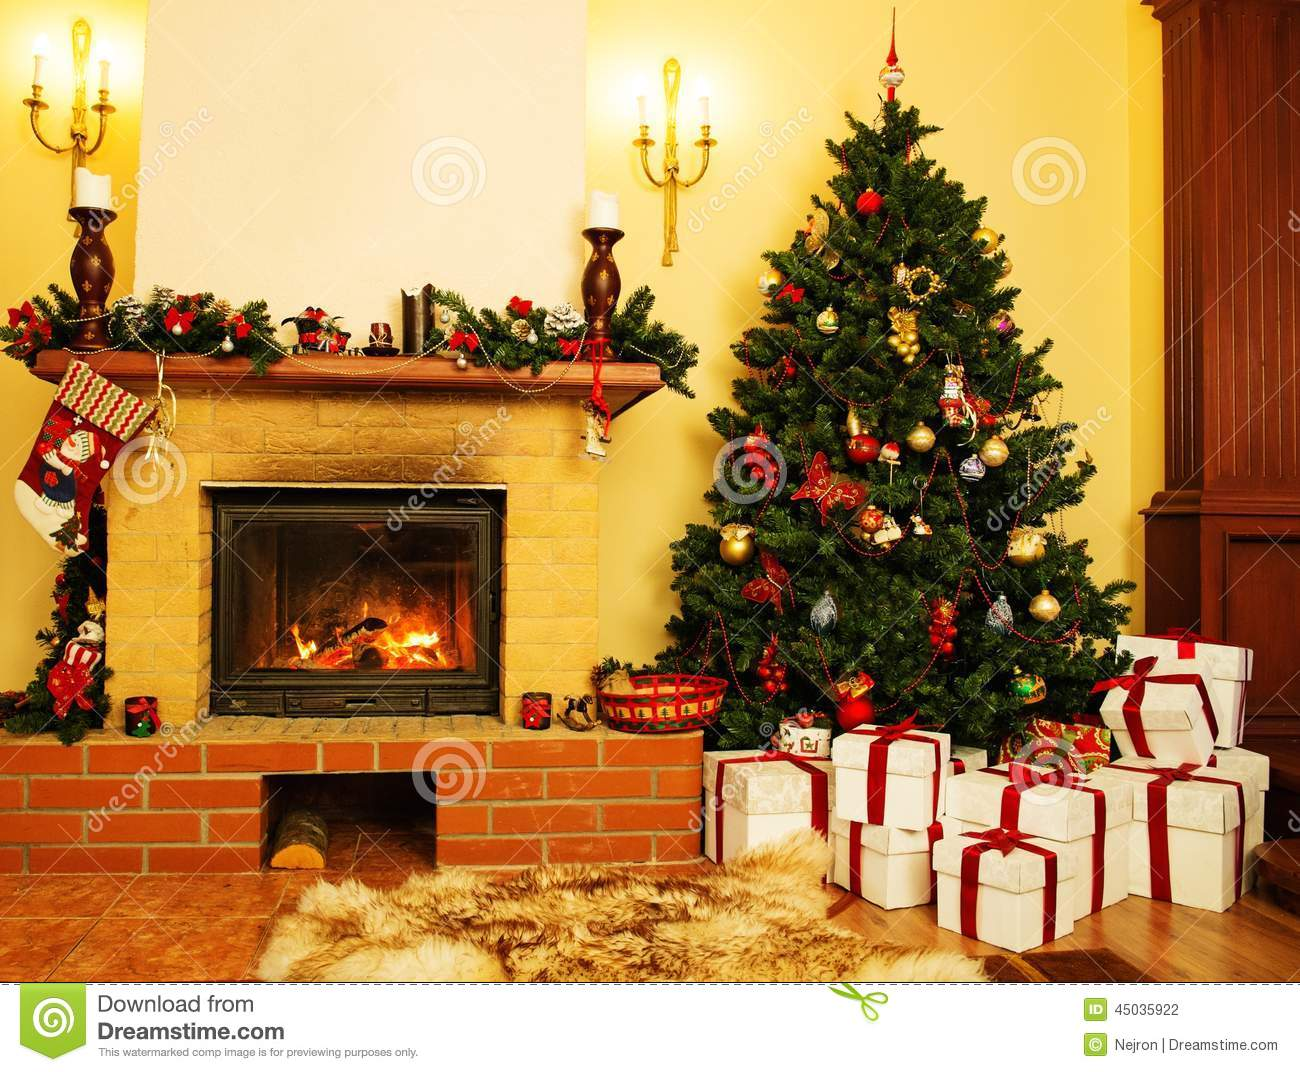 No l a d cor l 39 int rieur de maison photo stock image for Decoration noel interieur maison